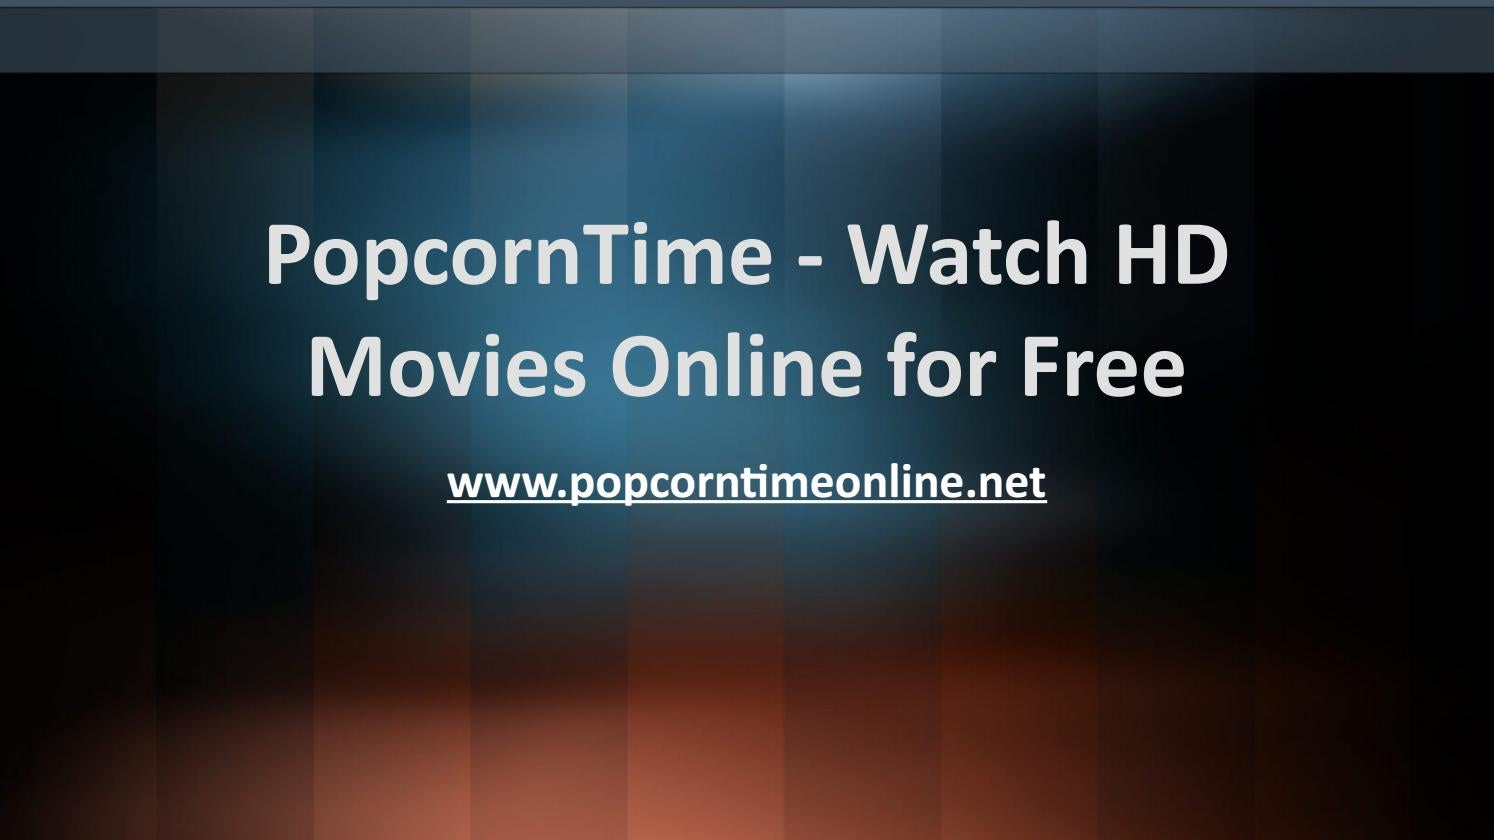 Popcorntime Watch Hd Movies Online By Brad Roby Issuu